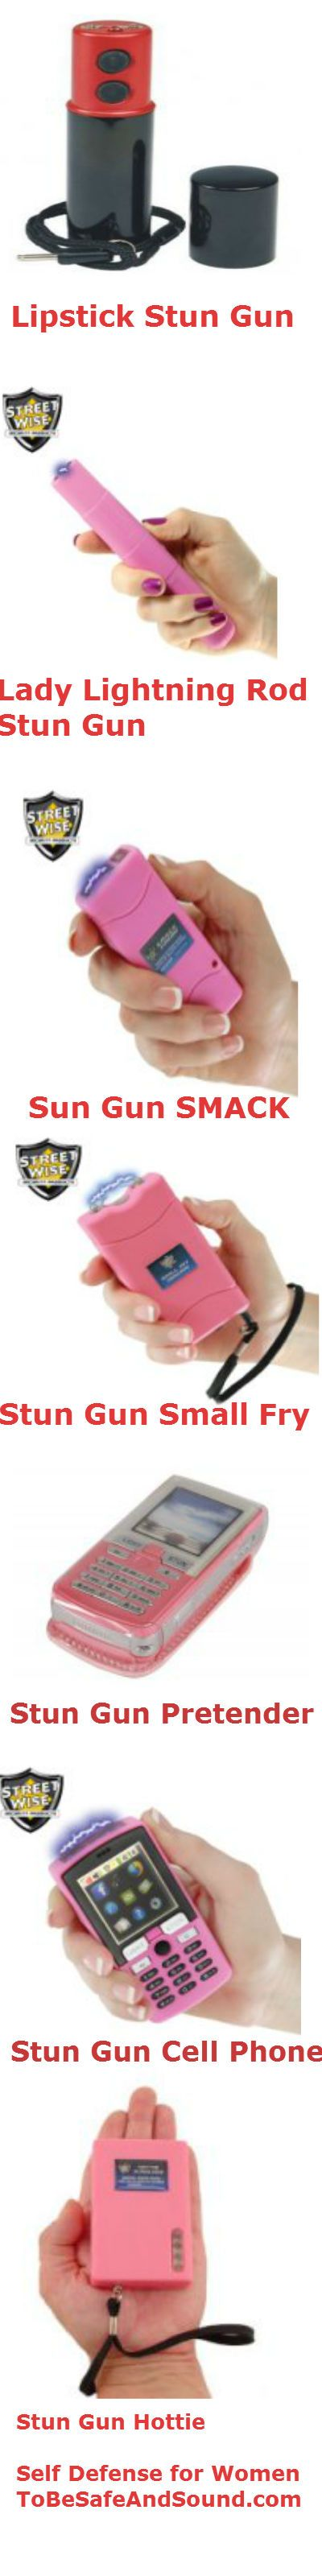 Non Lethal Weapons for Women's Self Defense --yourgreatestprotection.com [ shop.coldfiresoutheast.com ] #tips #selfdefense #safety